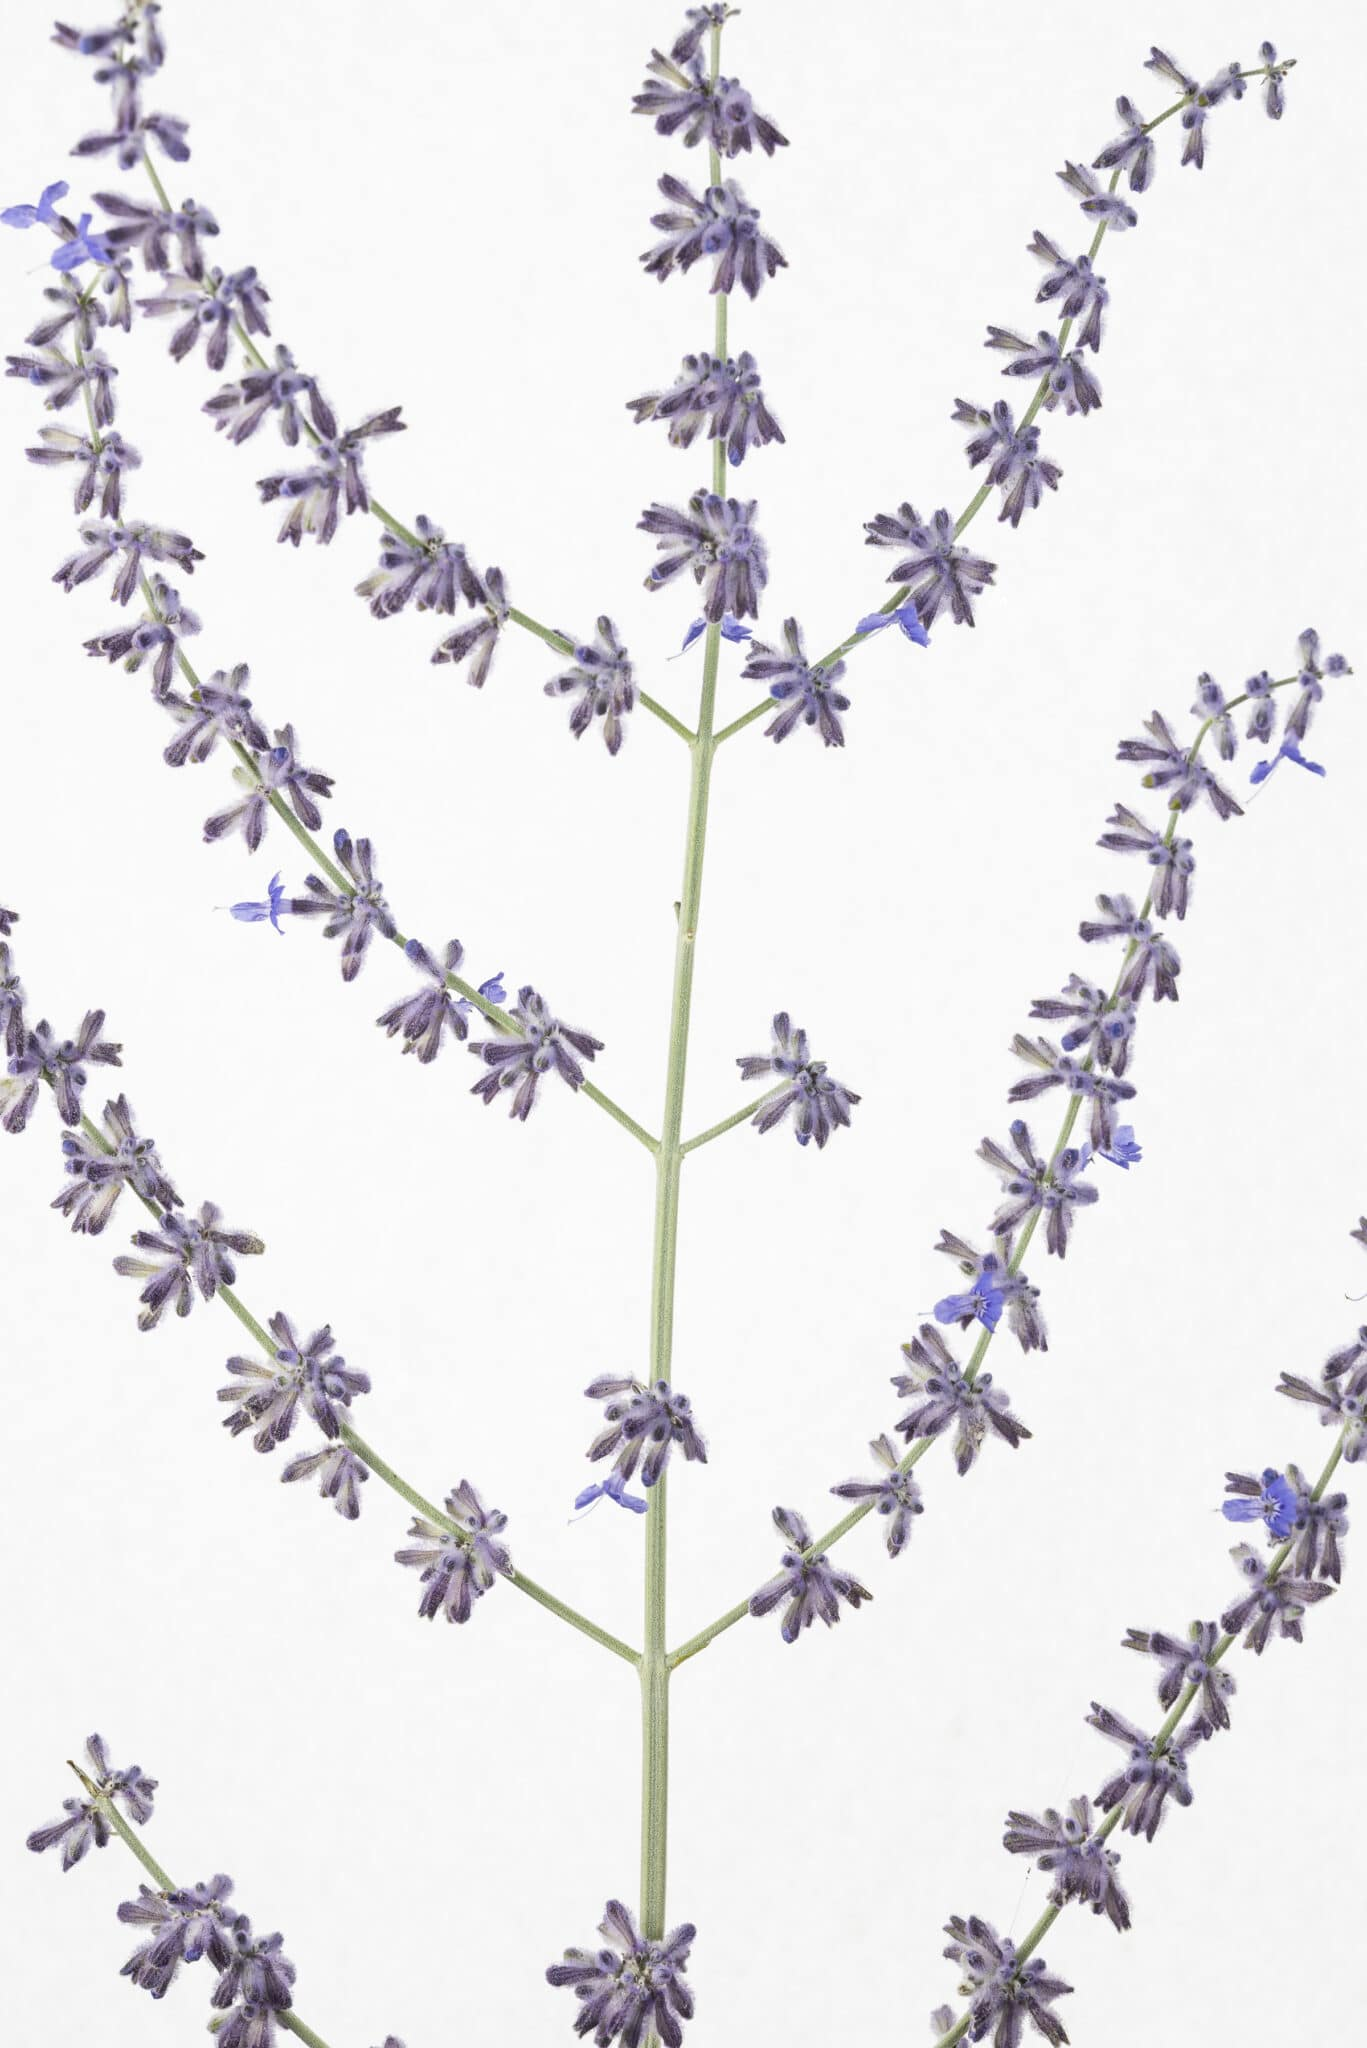 Russian sage on a white background.